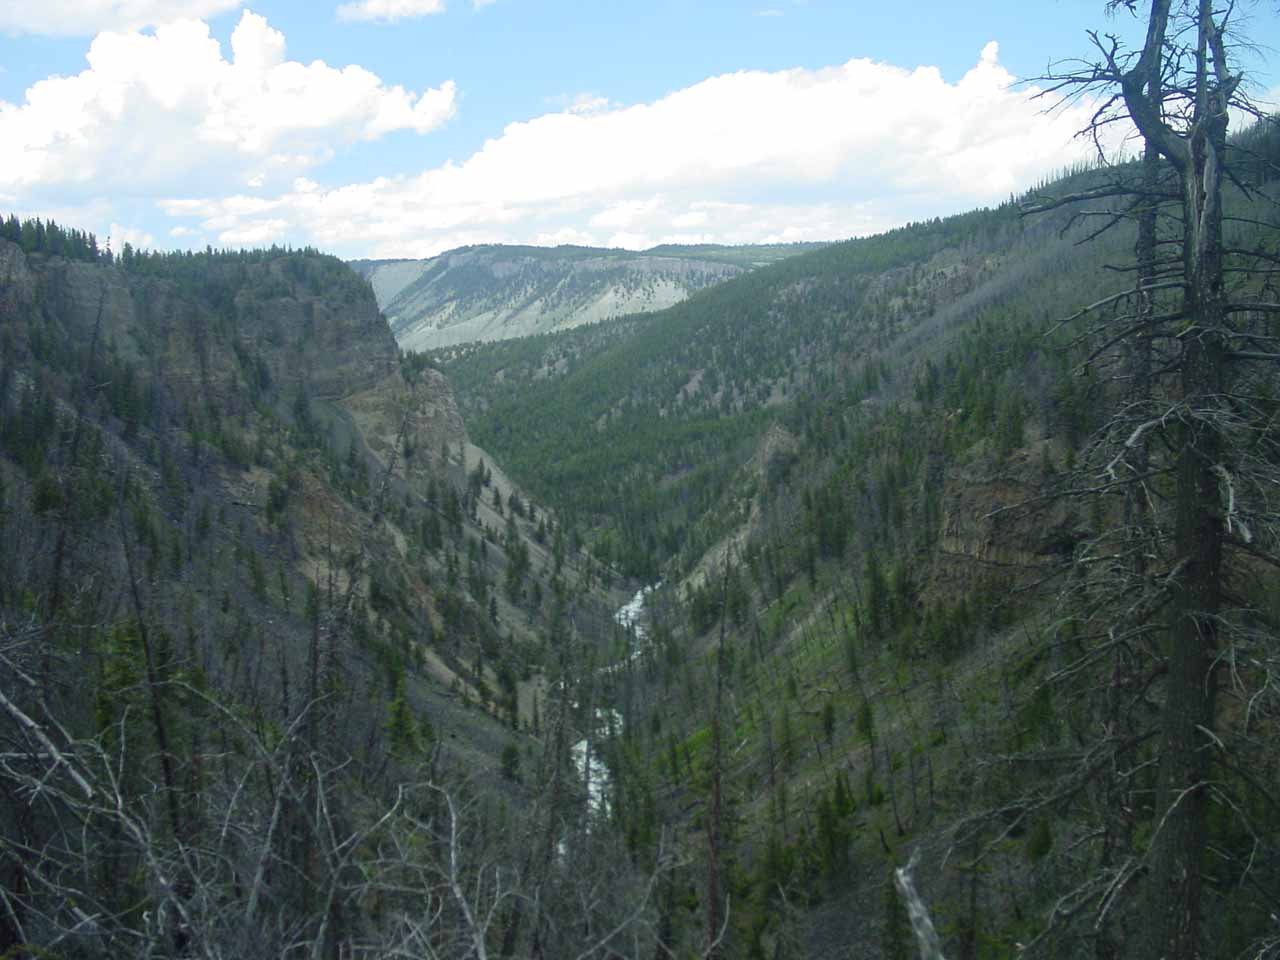 Looking into Sheepeater Canyon before the descent